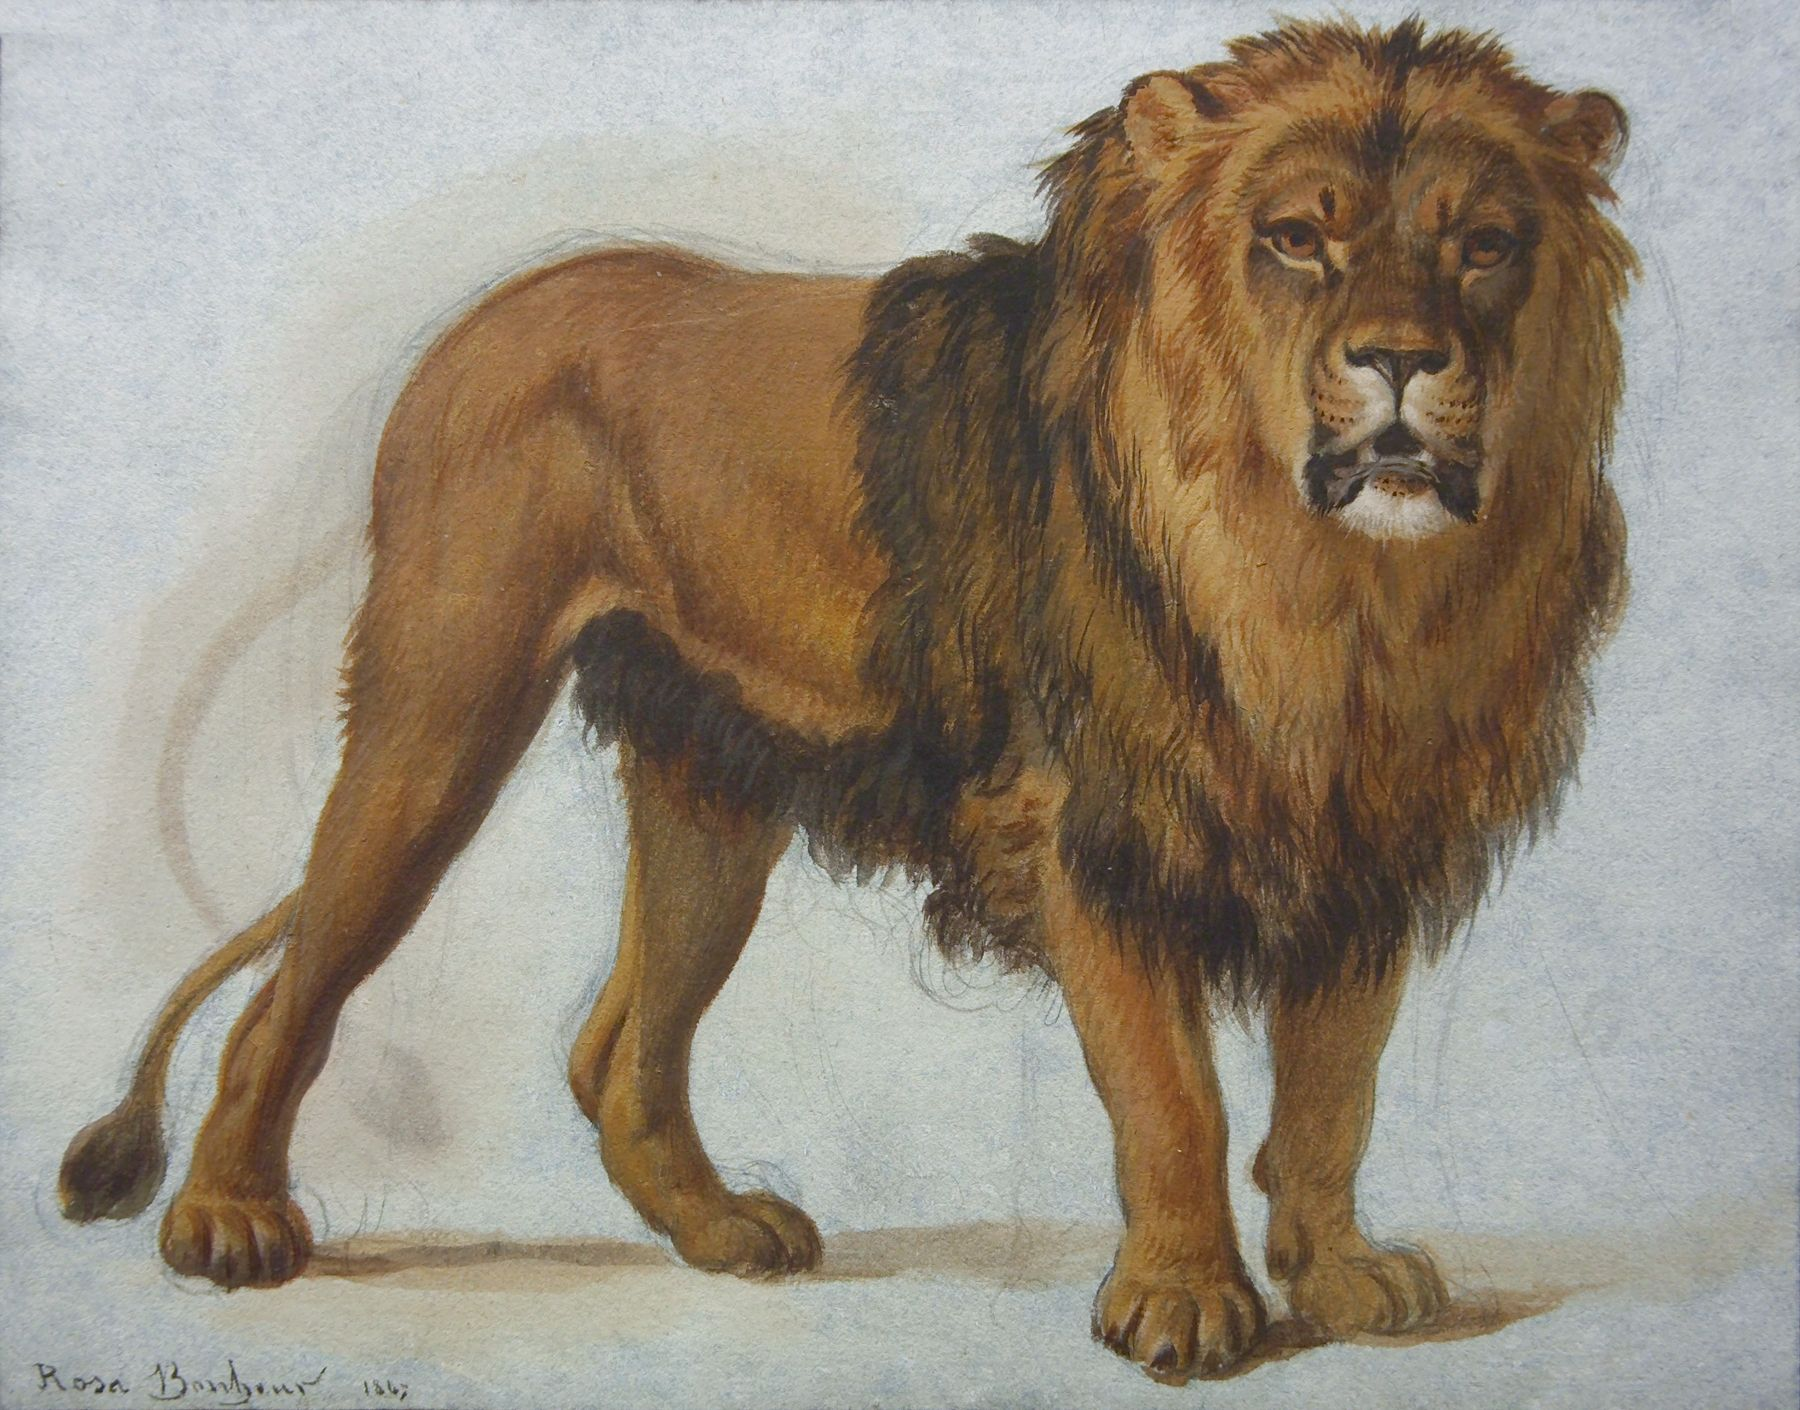 Rosa Bonheur, The Lion, 1847, watercolor on paper, 6 1/4 x 9 1/2 inches